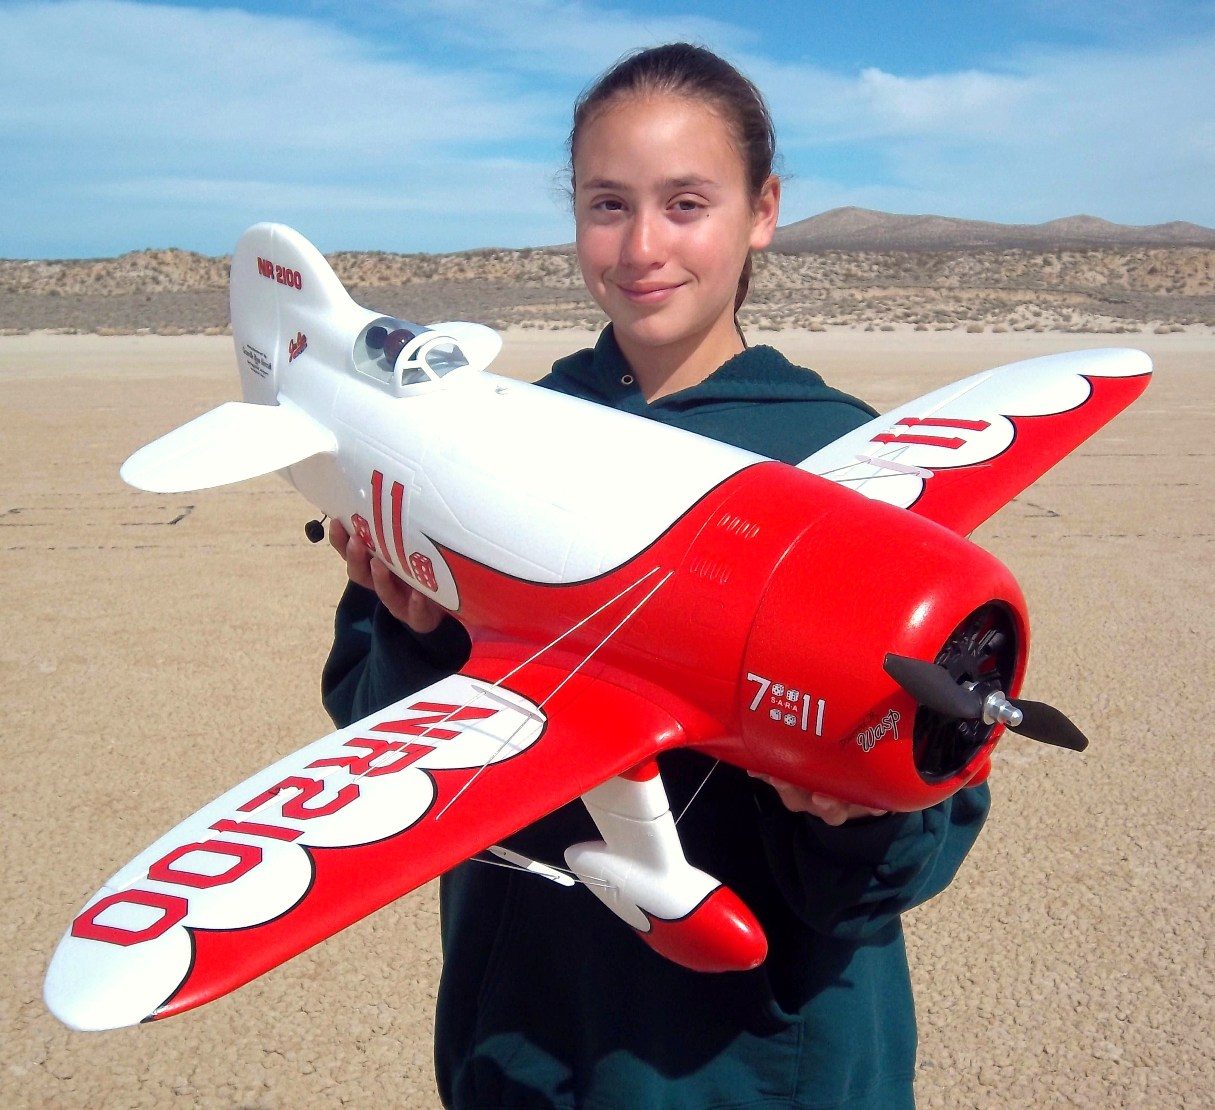 RC Pilot Evelyn holding the New ElectriFly Gee Bee.